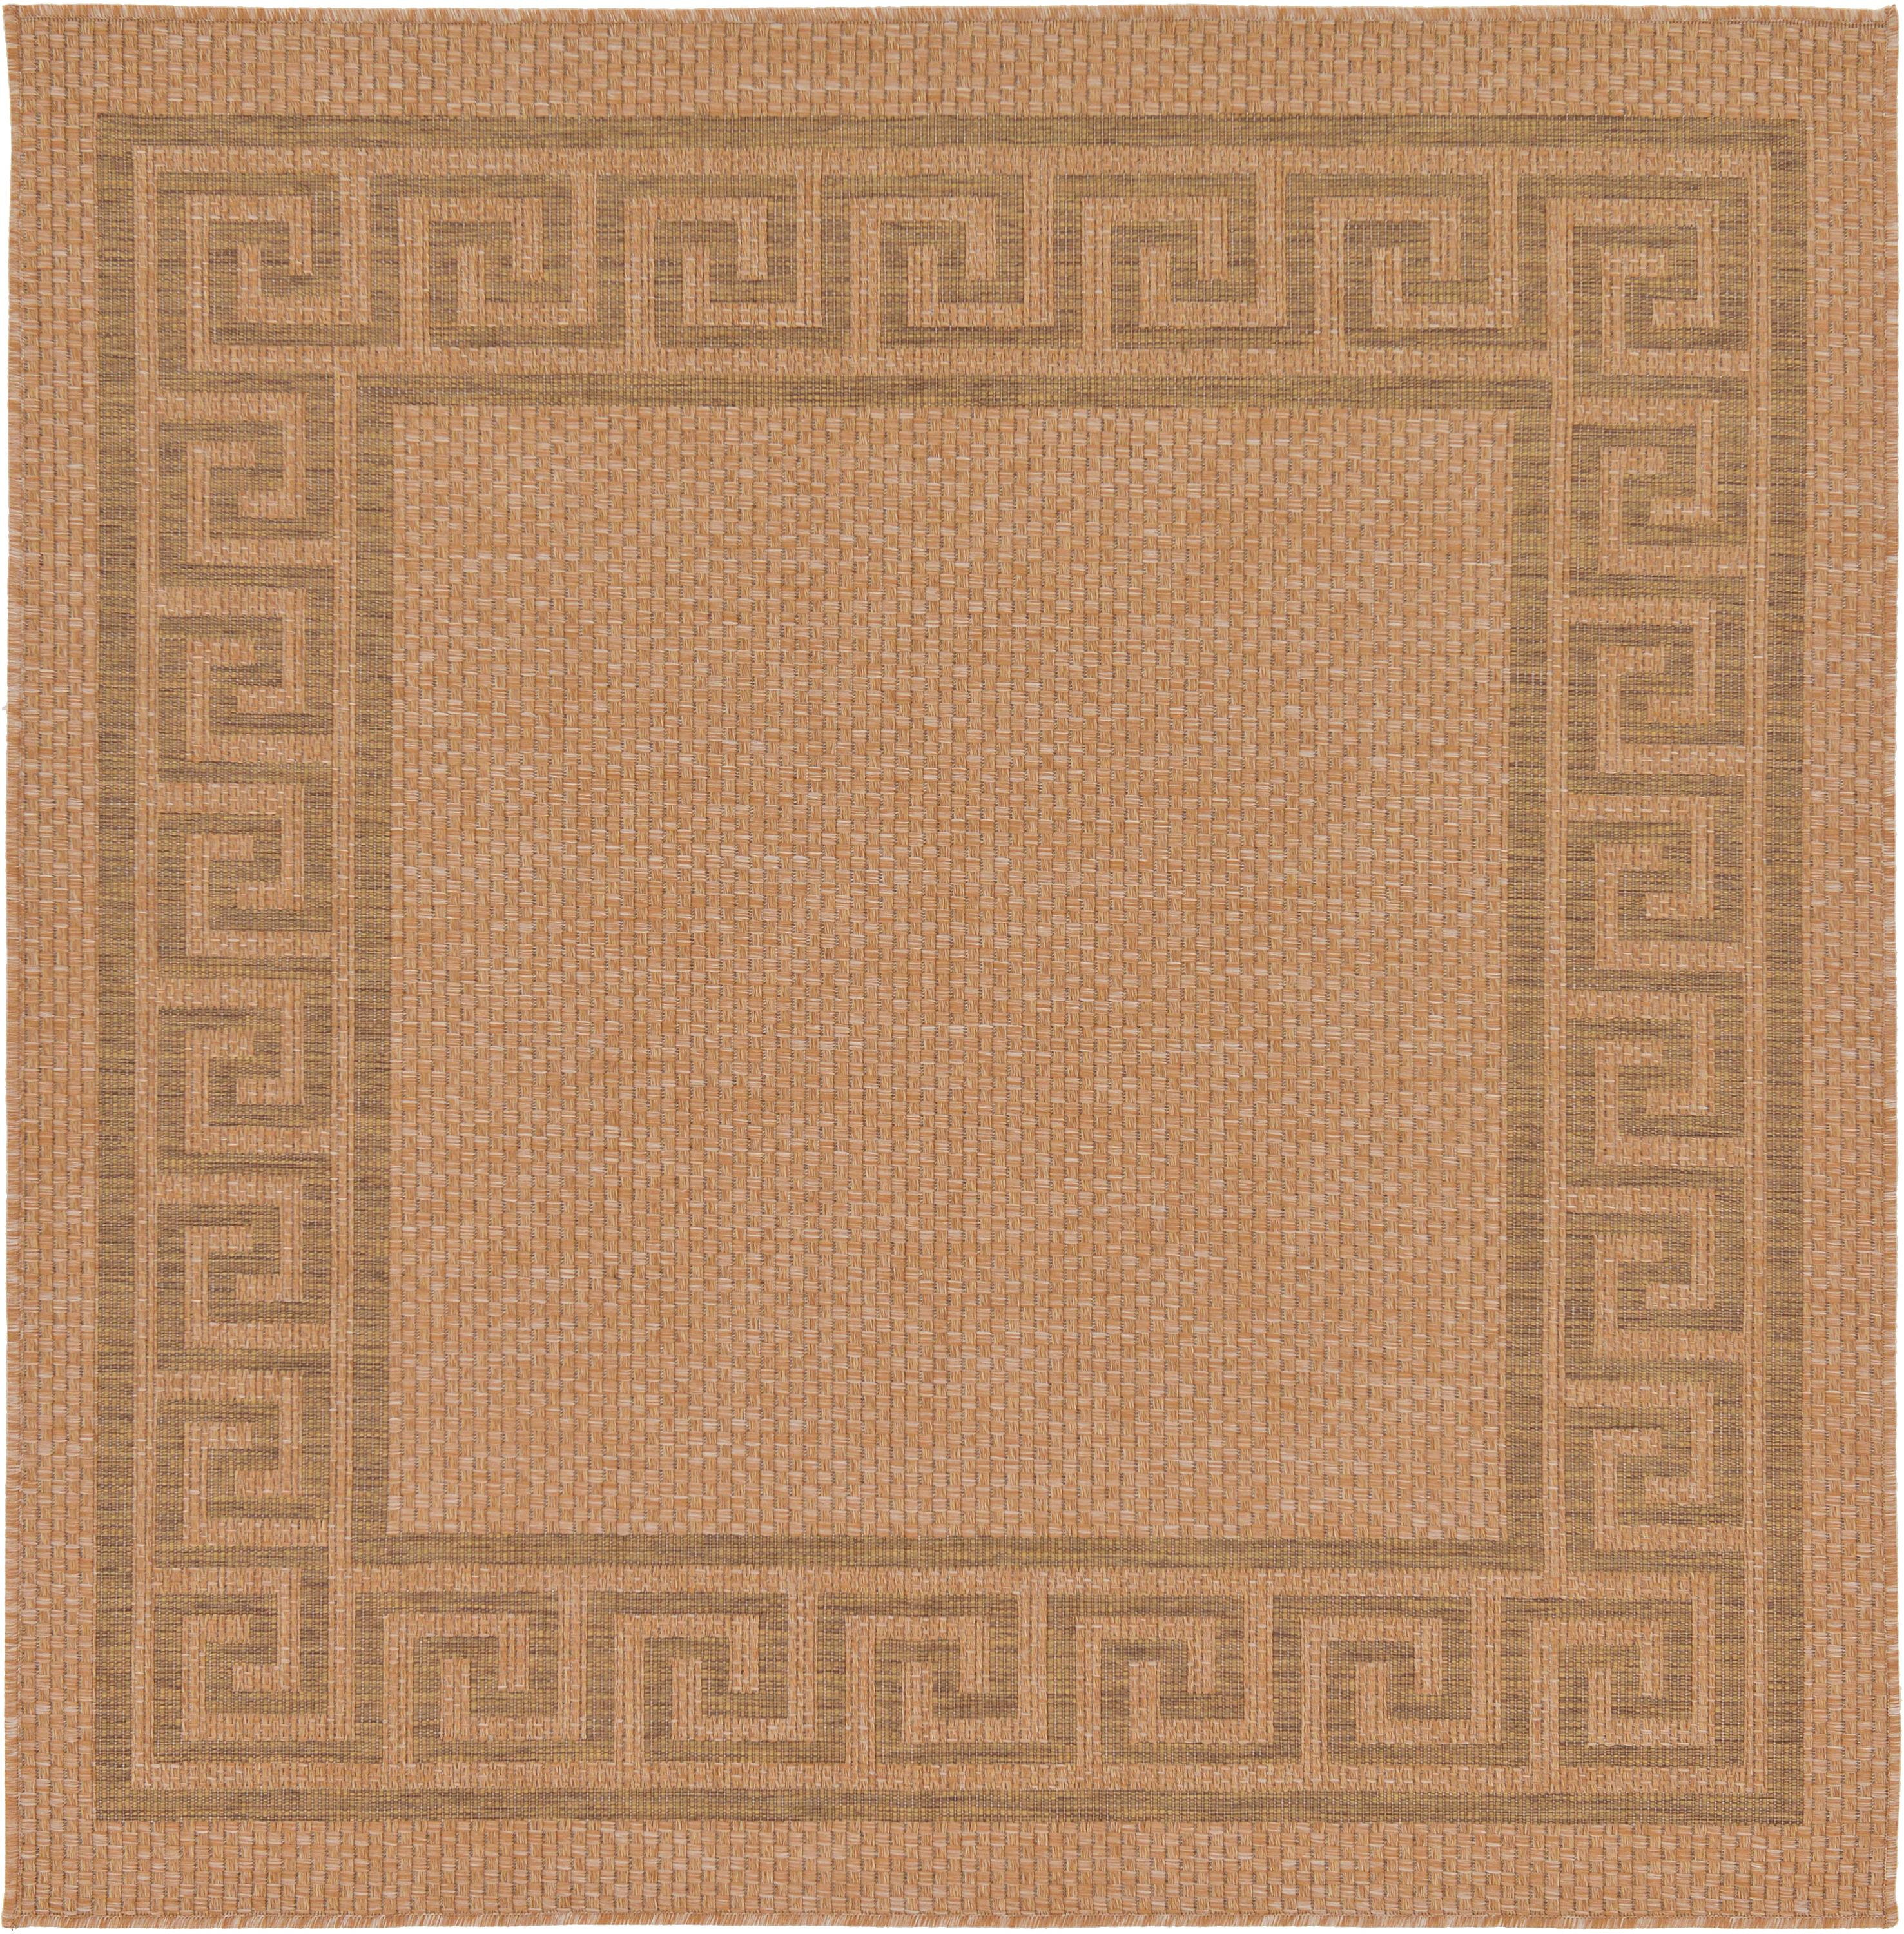 Outdoor Border Square Rug